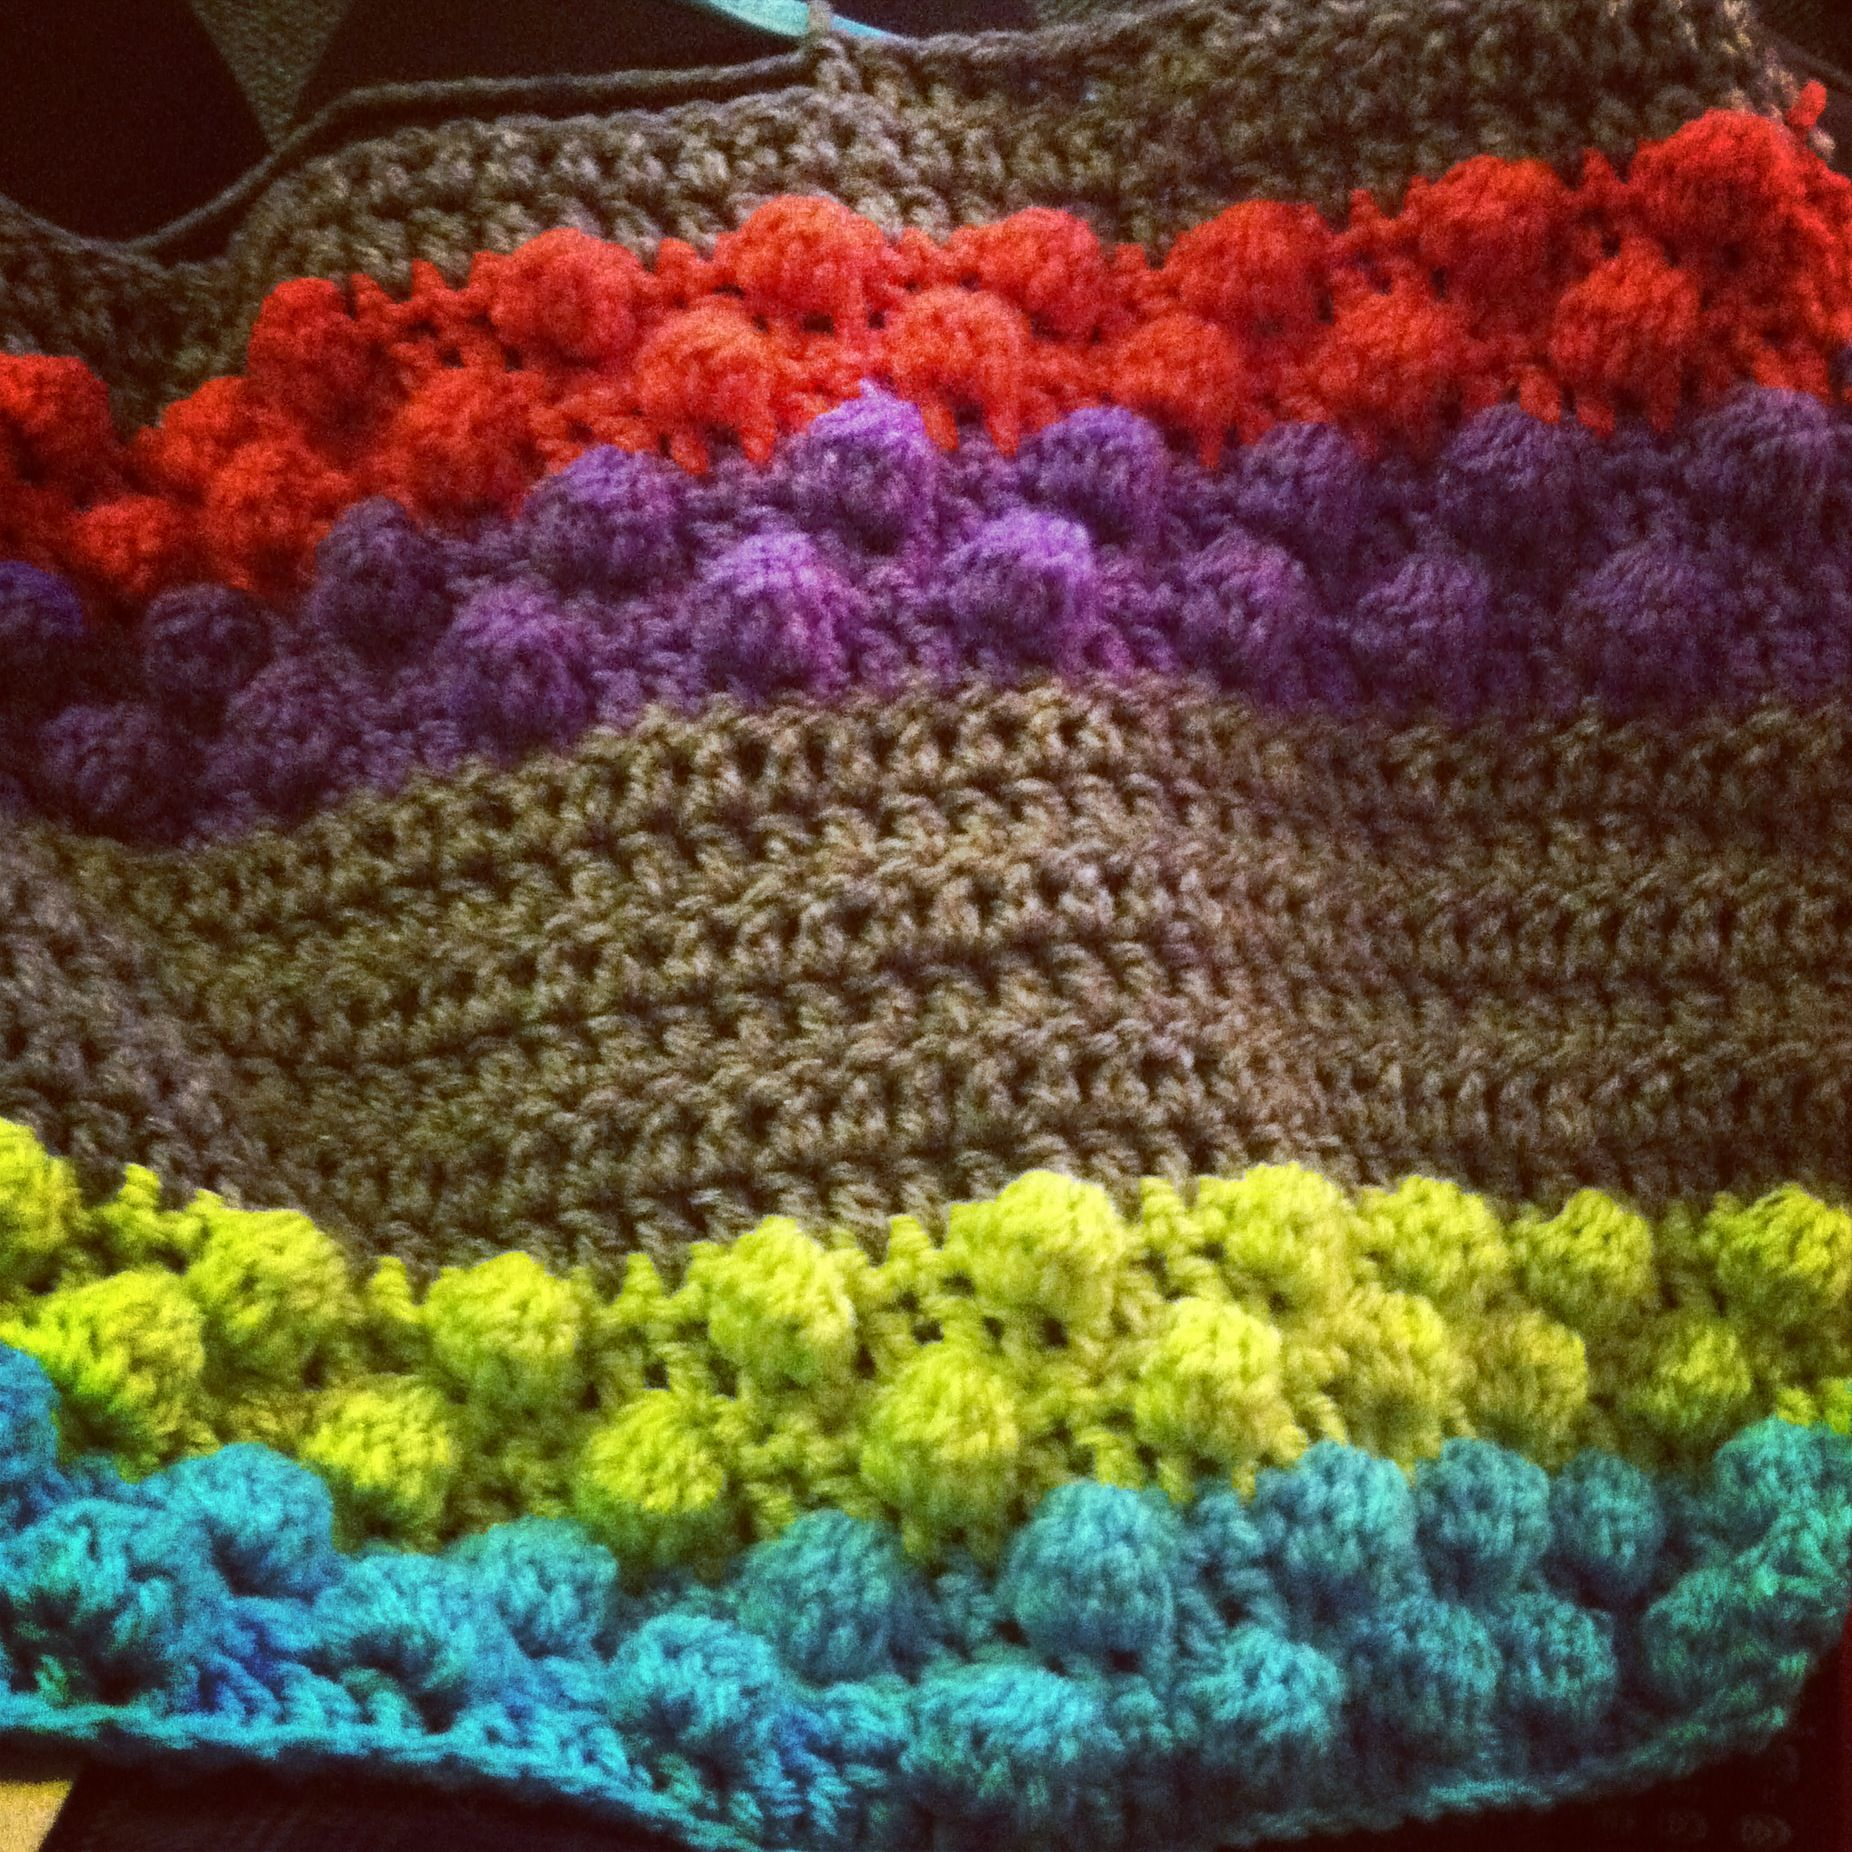 Knitted Popcorn Stitch Afghan : Crochet blanket using popcorn stich (dctog5) crochet Pinterest Blankets...